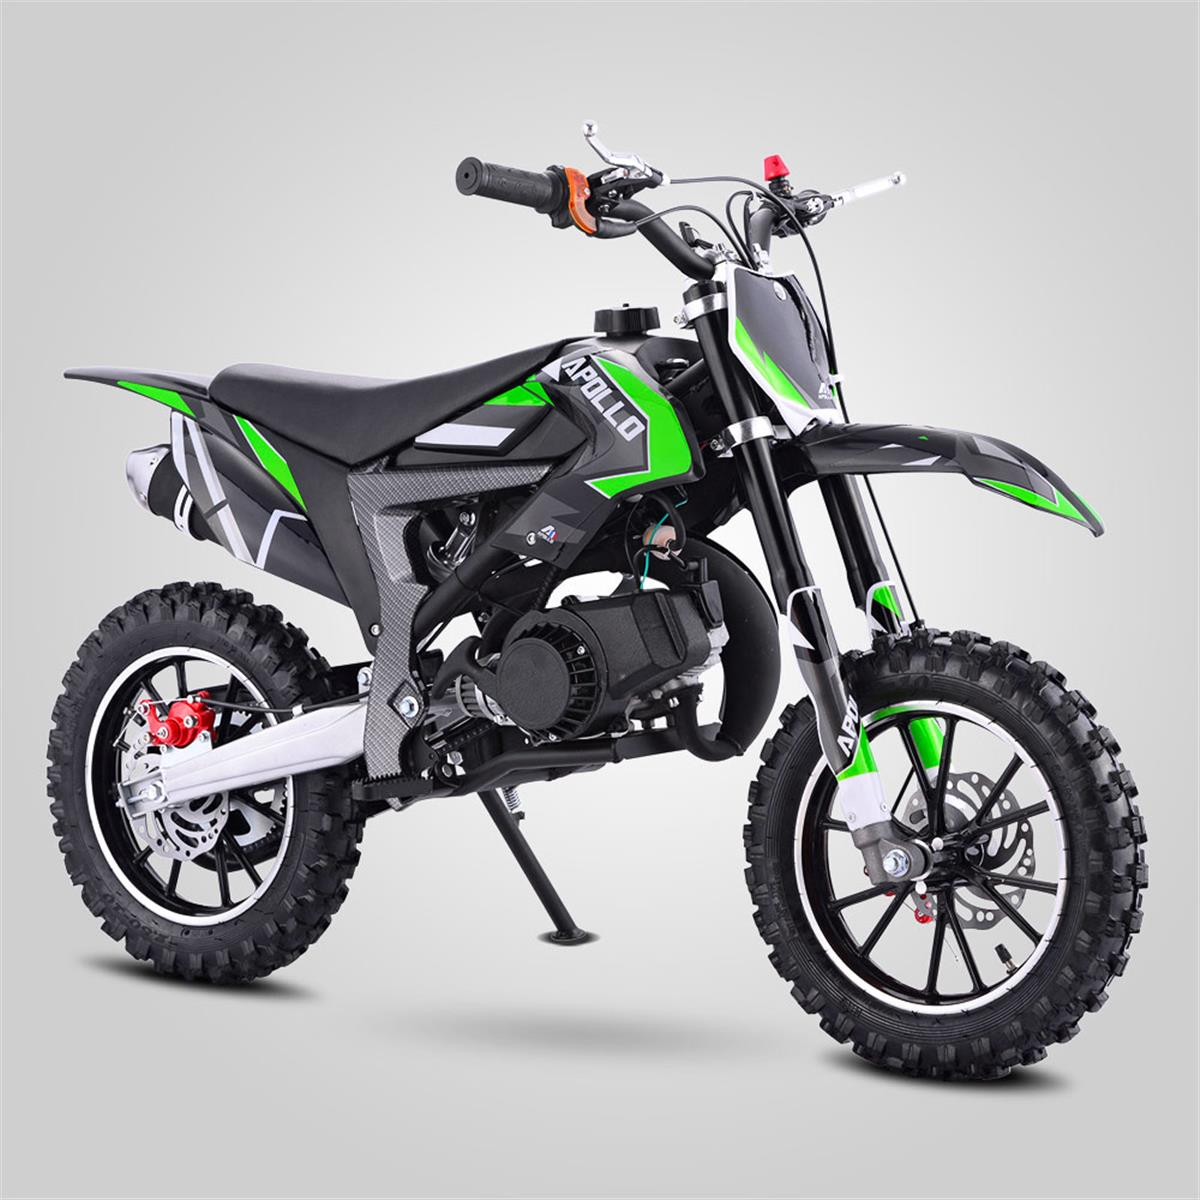 pocket cross apollo falcon vert 50cc smallmx dirt bike pit bike quads minimoto. Black Bedroom Furniture Sets. Home Design Ideas